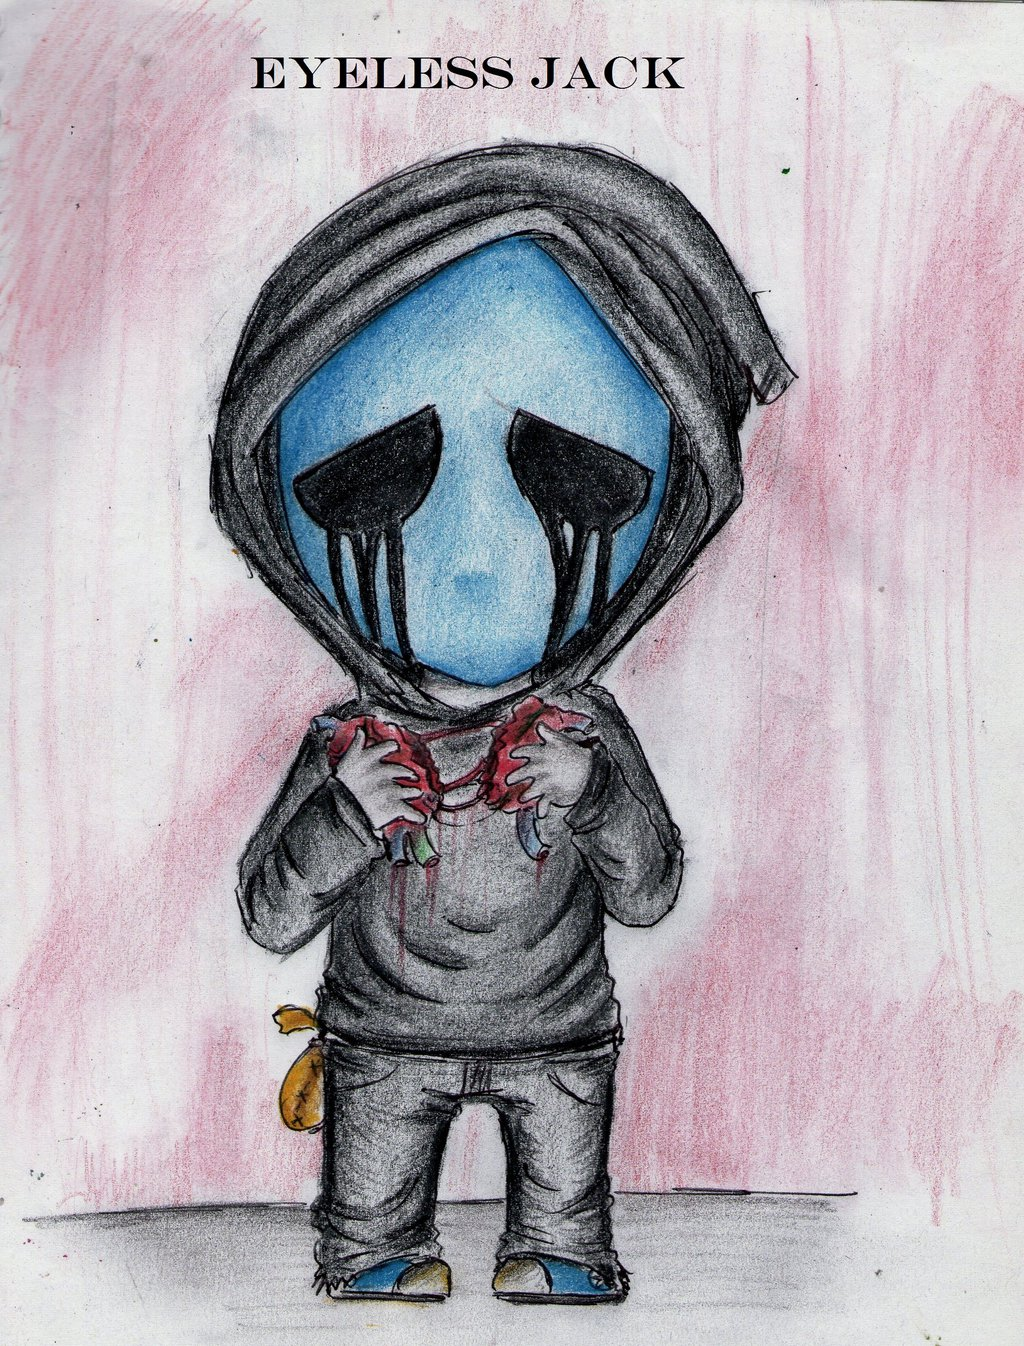 Drawn eyeless jack chibi ClaudiaVianney the Jeff by and